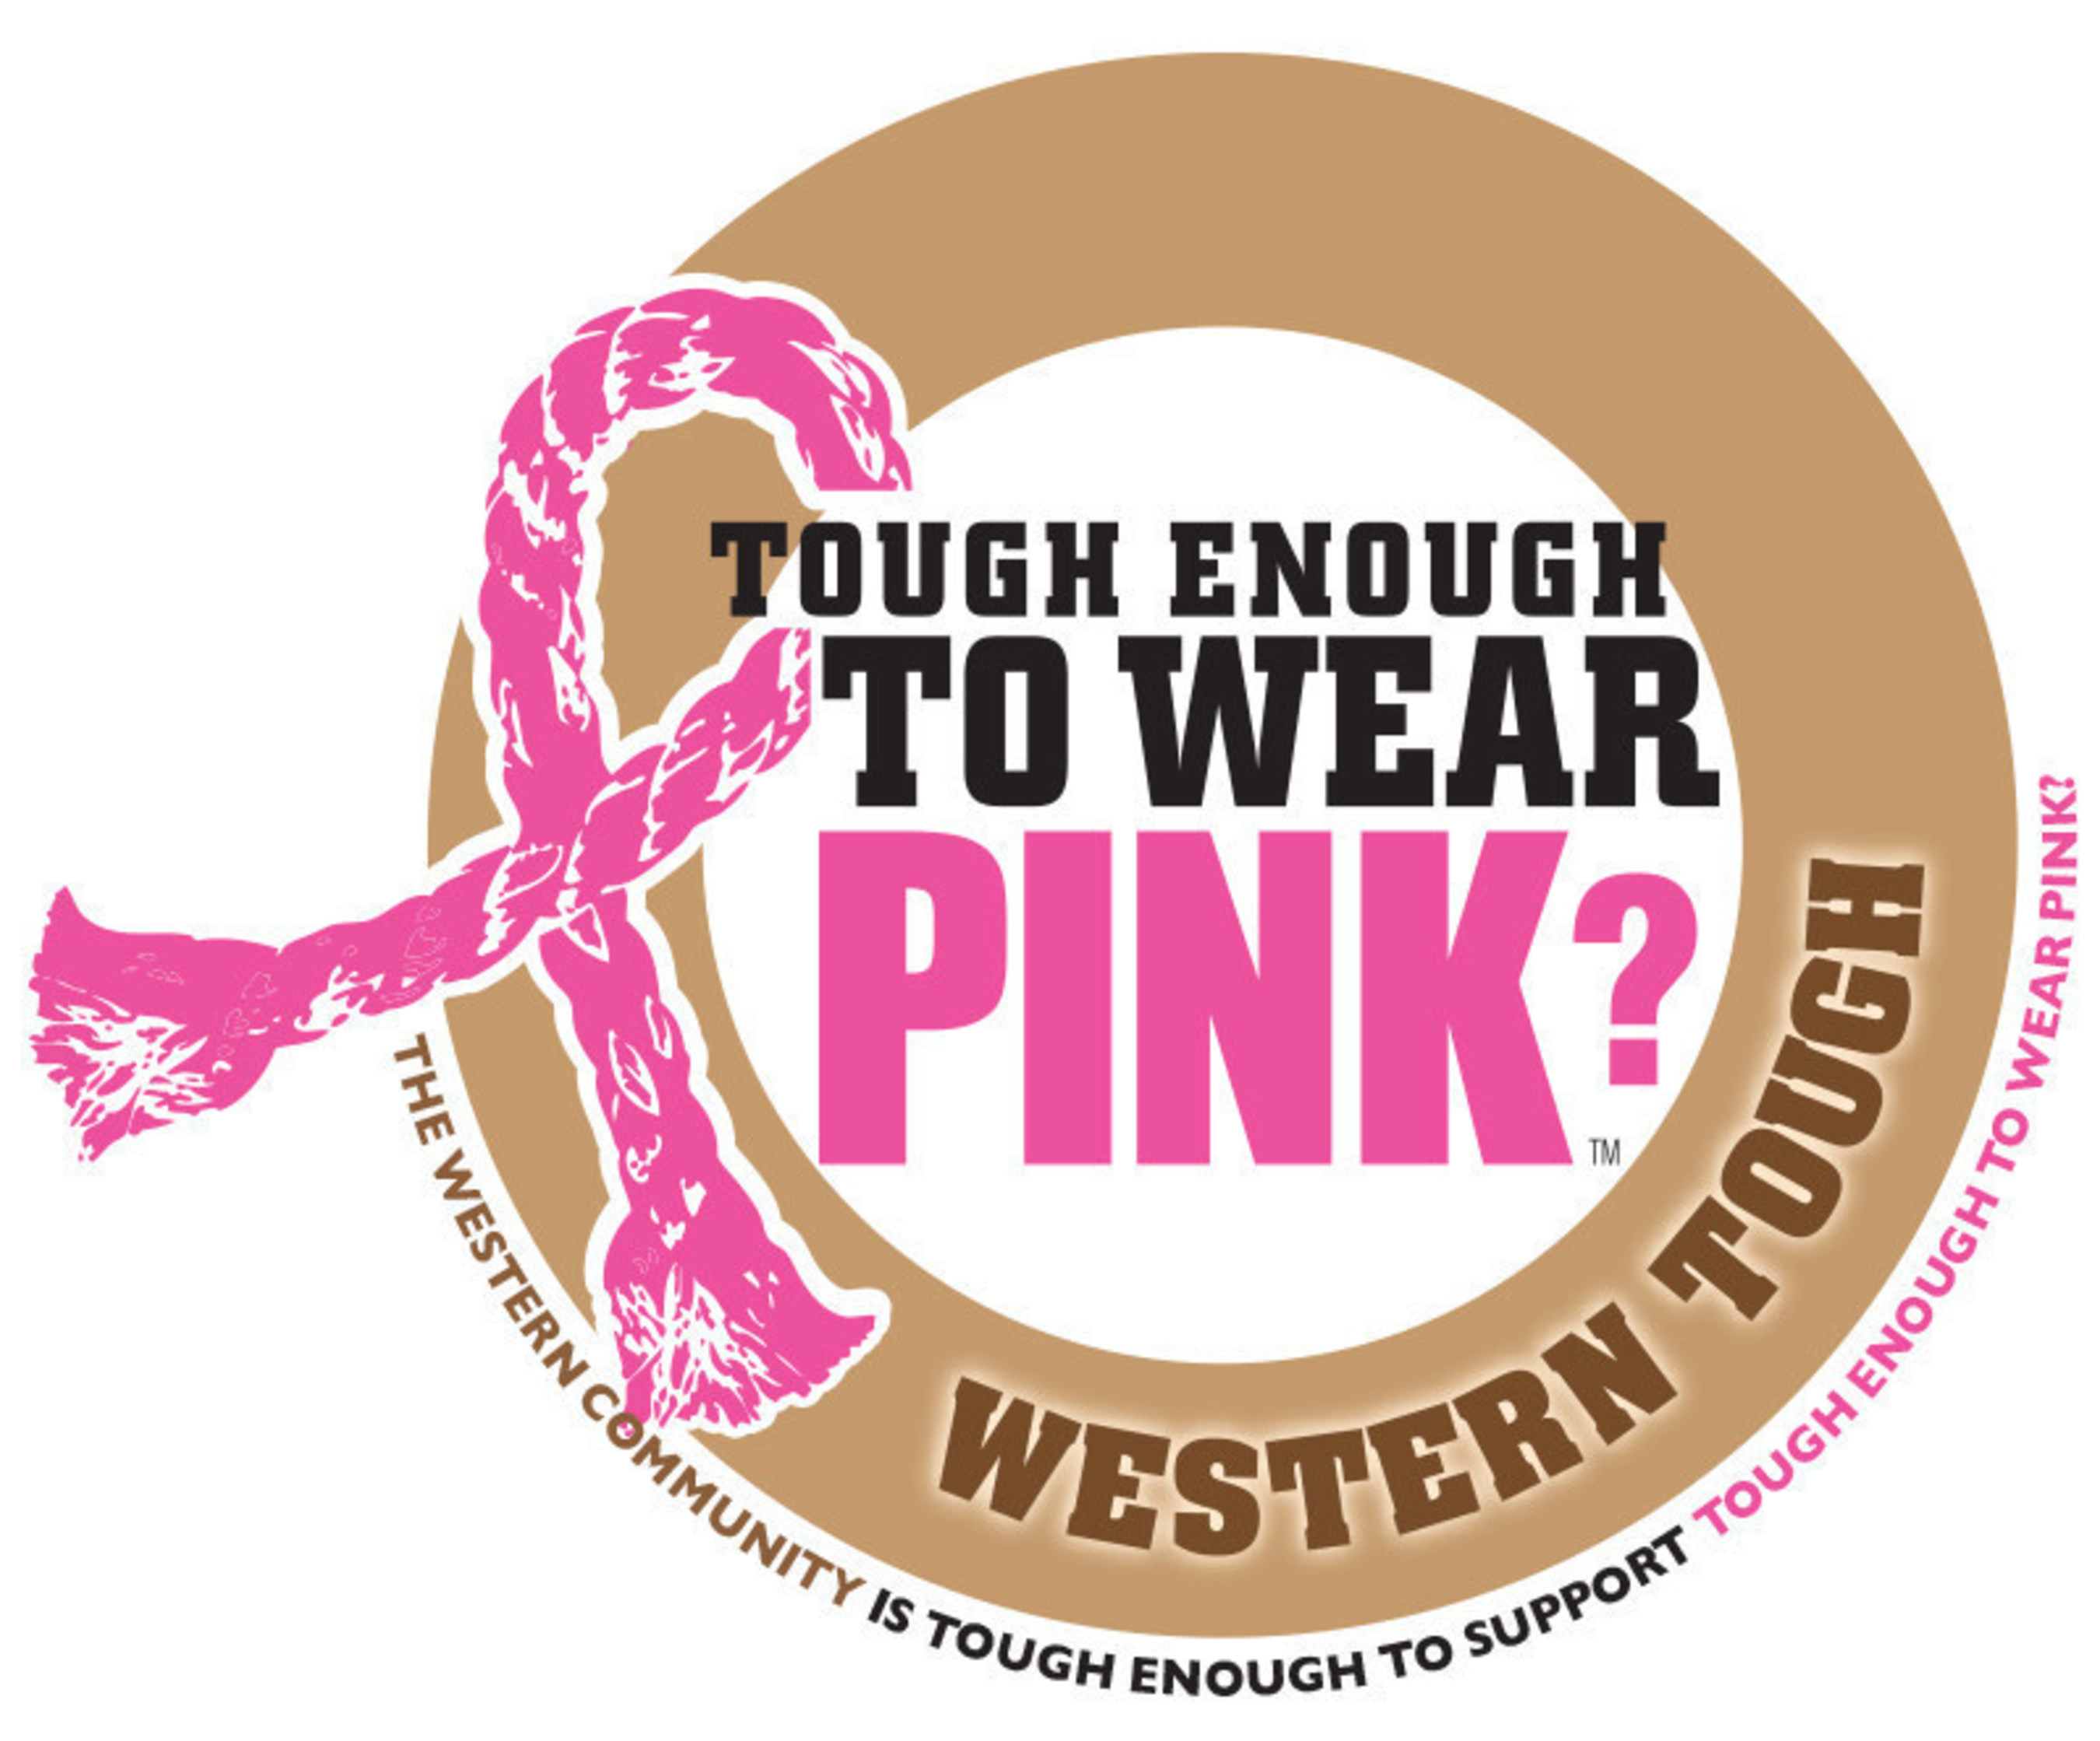 Tough Enough To Wear Pink, the western community's campaign against breast cancer